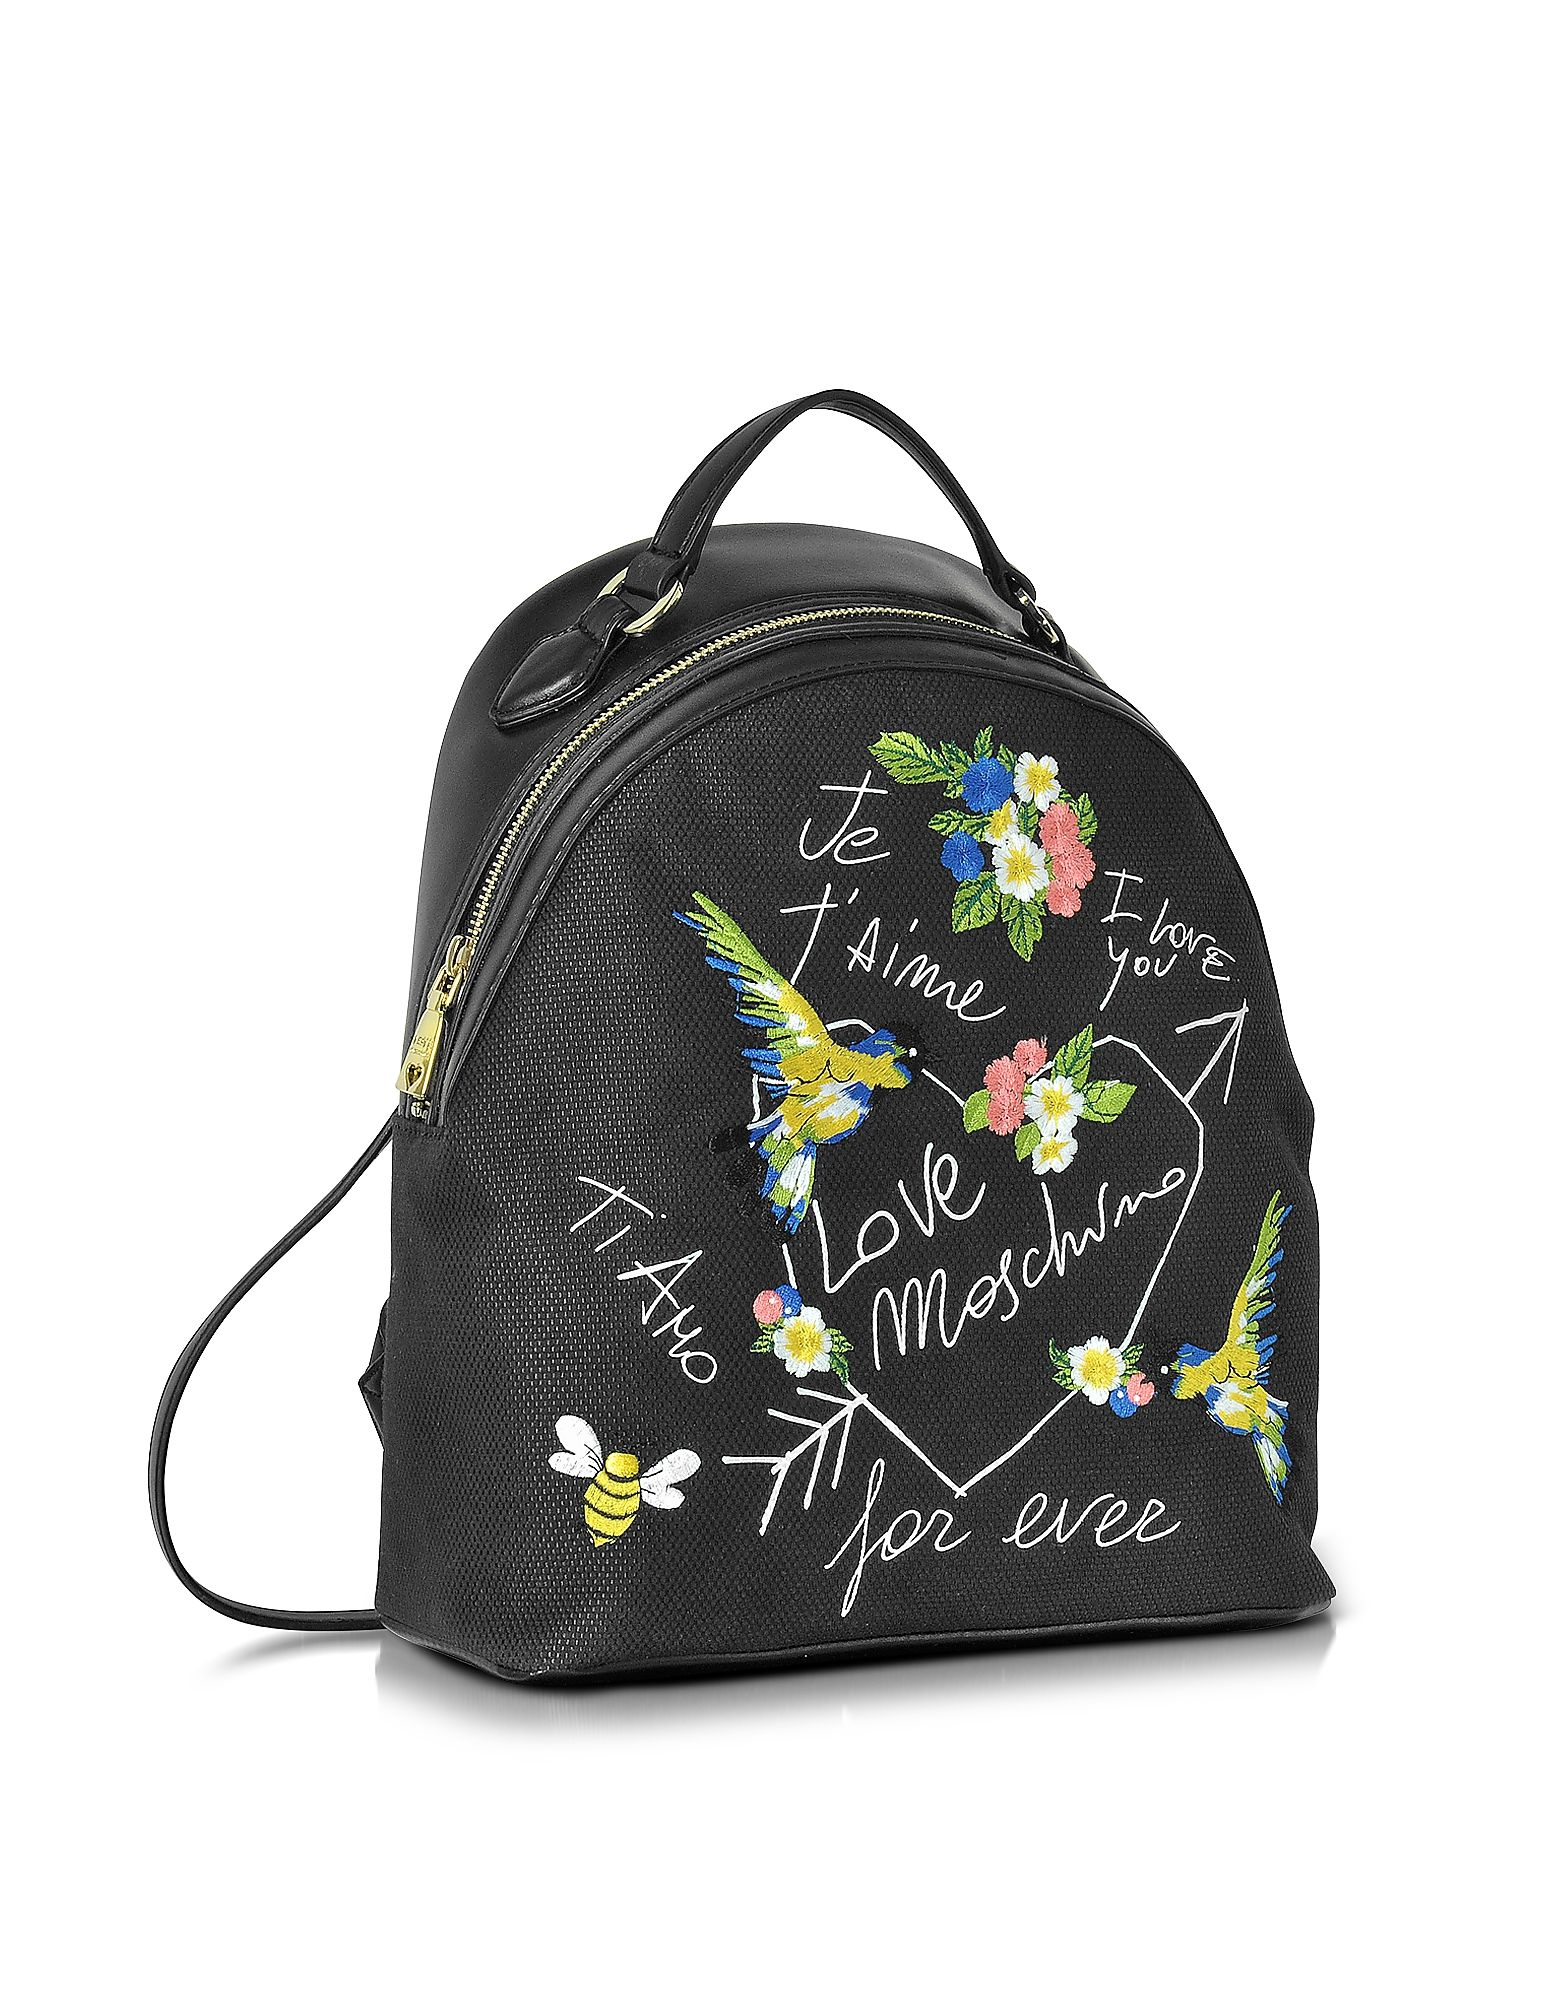 3a09091e258 Love Moschino Black Canvas and Black Eco Leather Backpack w/Embroidery I  Love You at FORZIERI